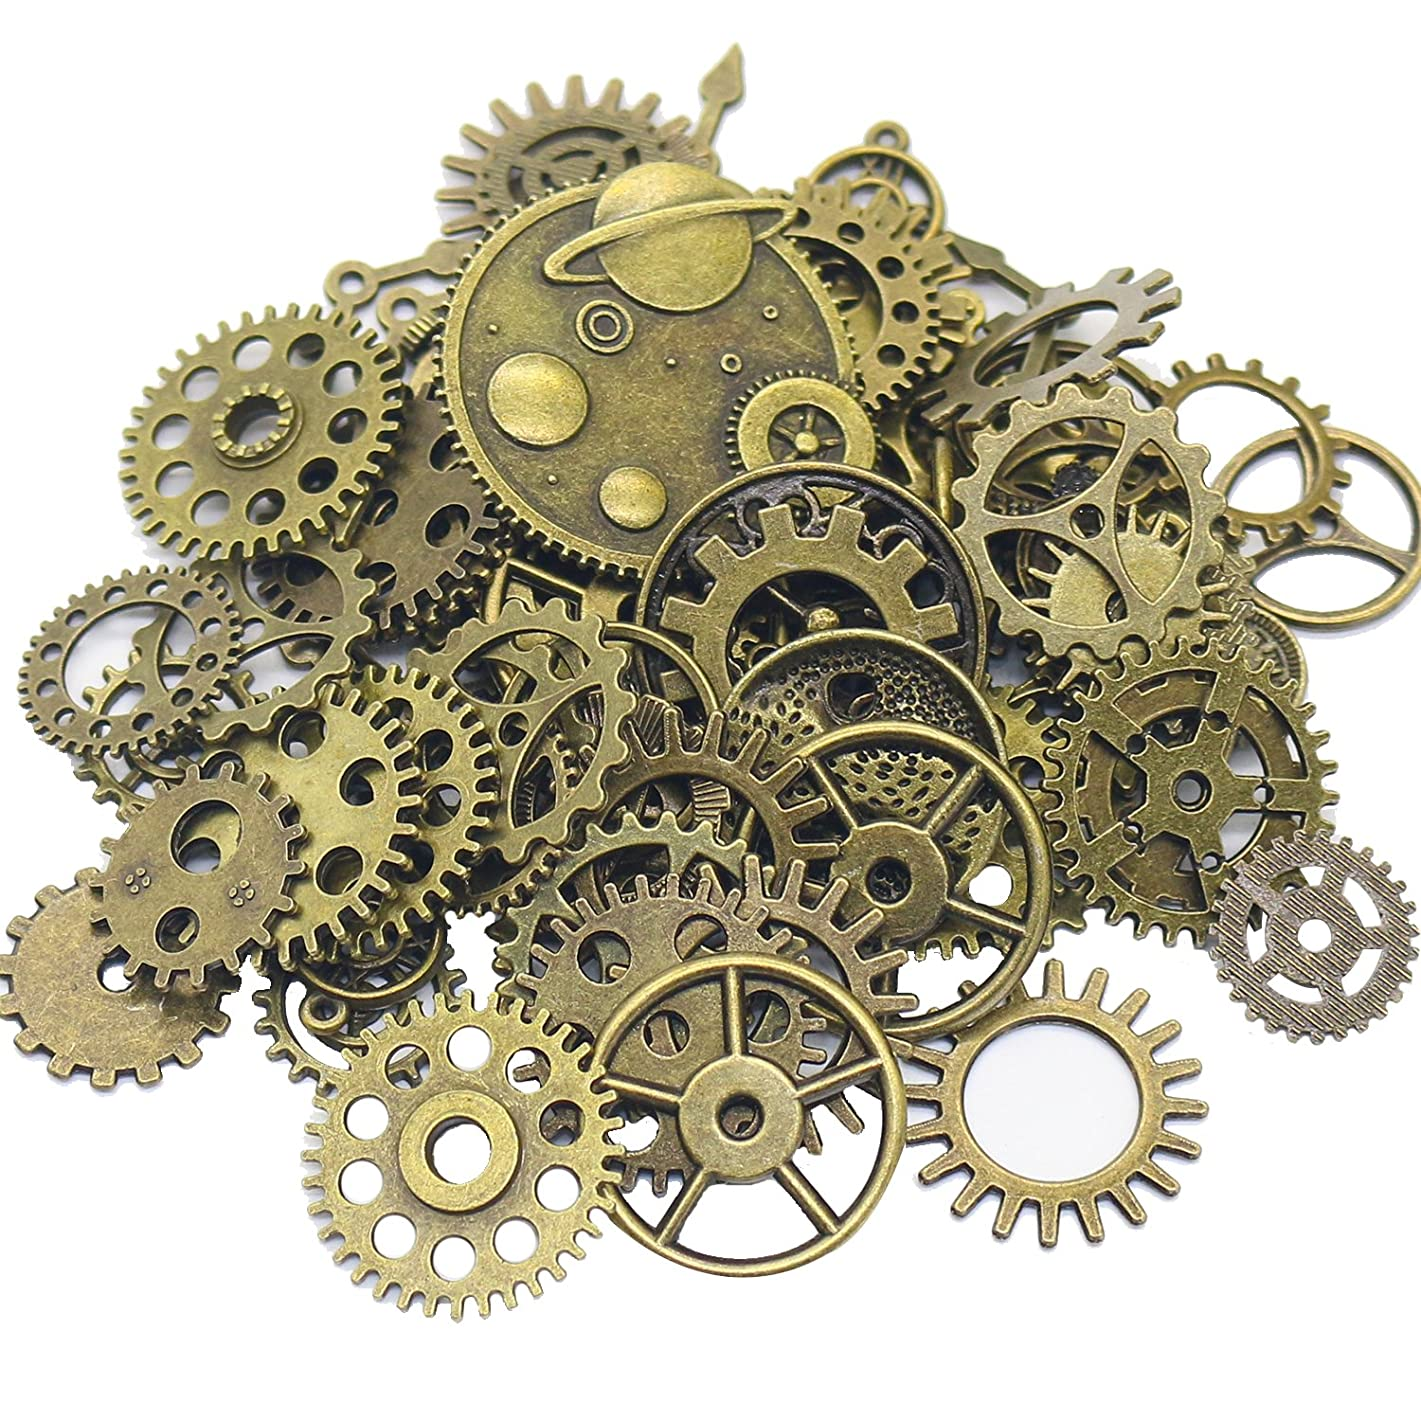 Gutapo 150 Gram Bronze Gear Charms Antiqued Metal Skeleton Retro Steampunk Pendant Watch Wheel Cog Crafting Jewelry Making Accessory Handmade